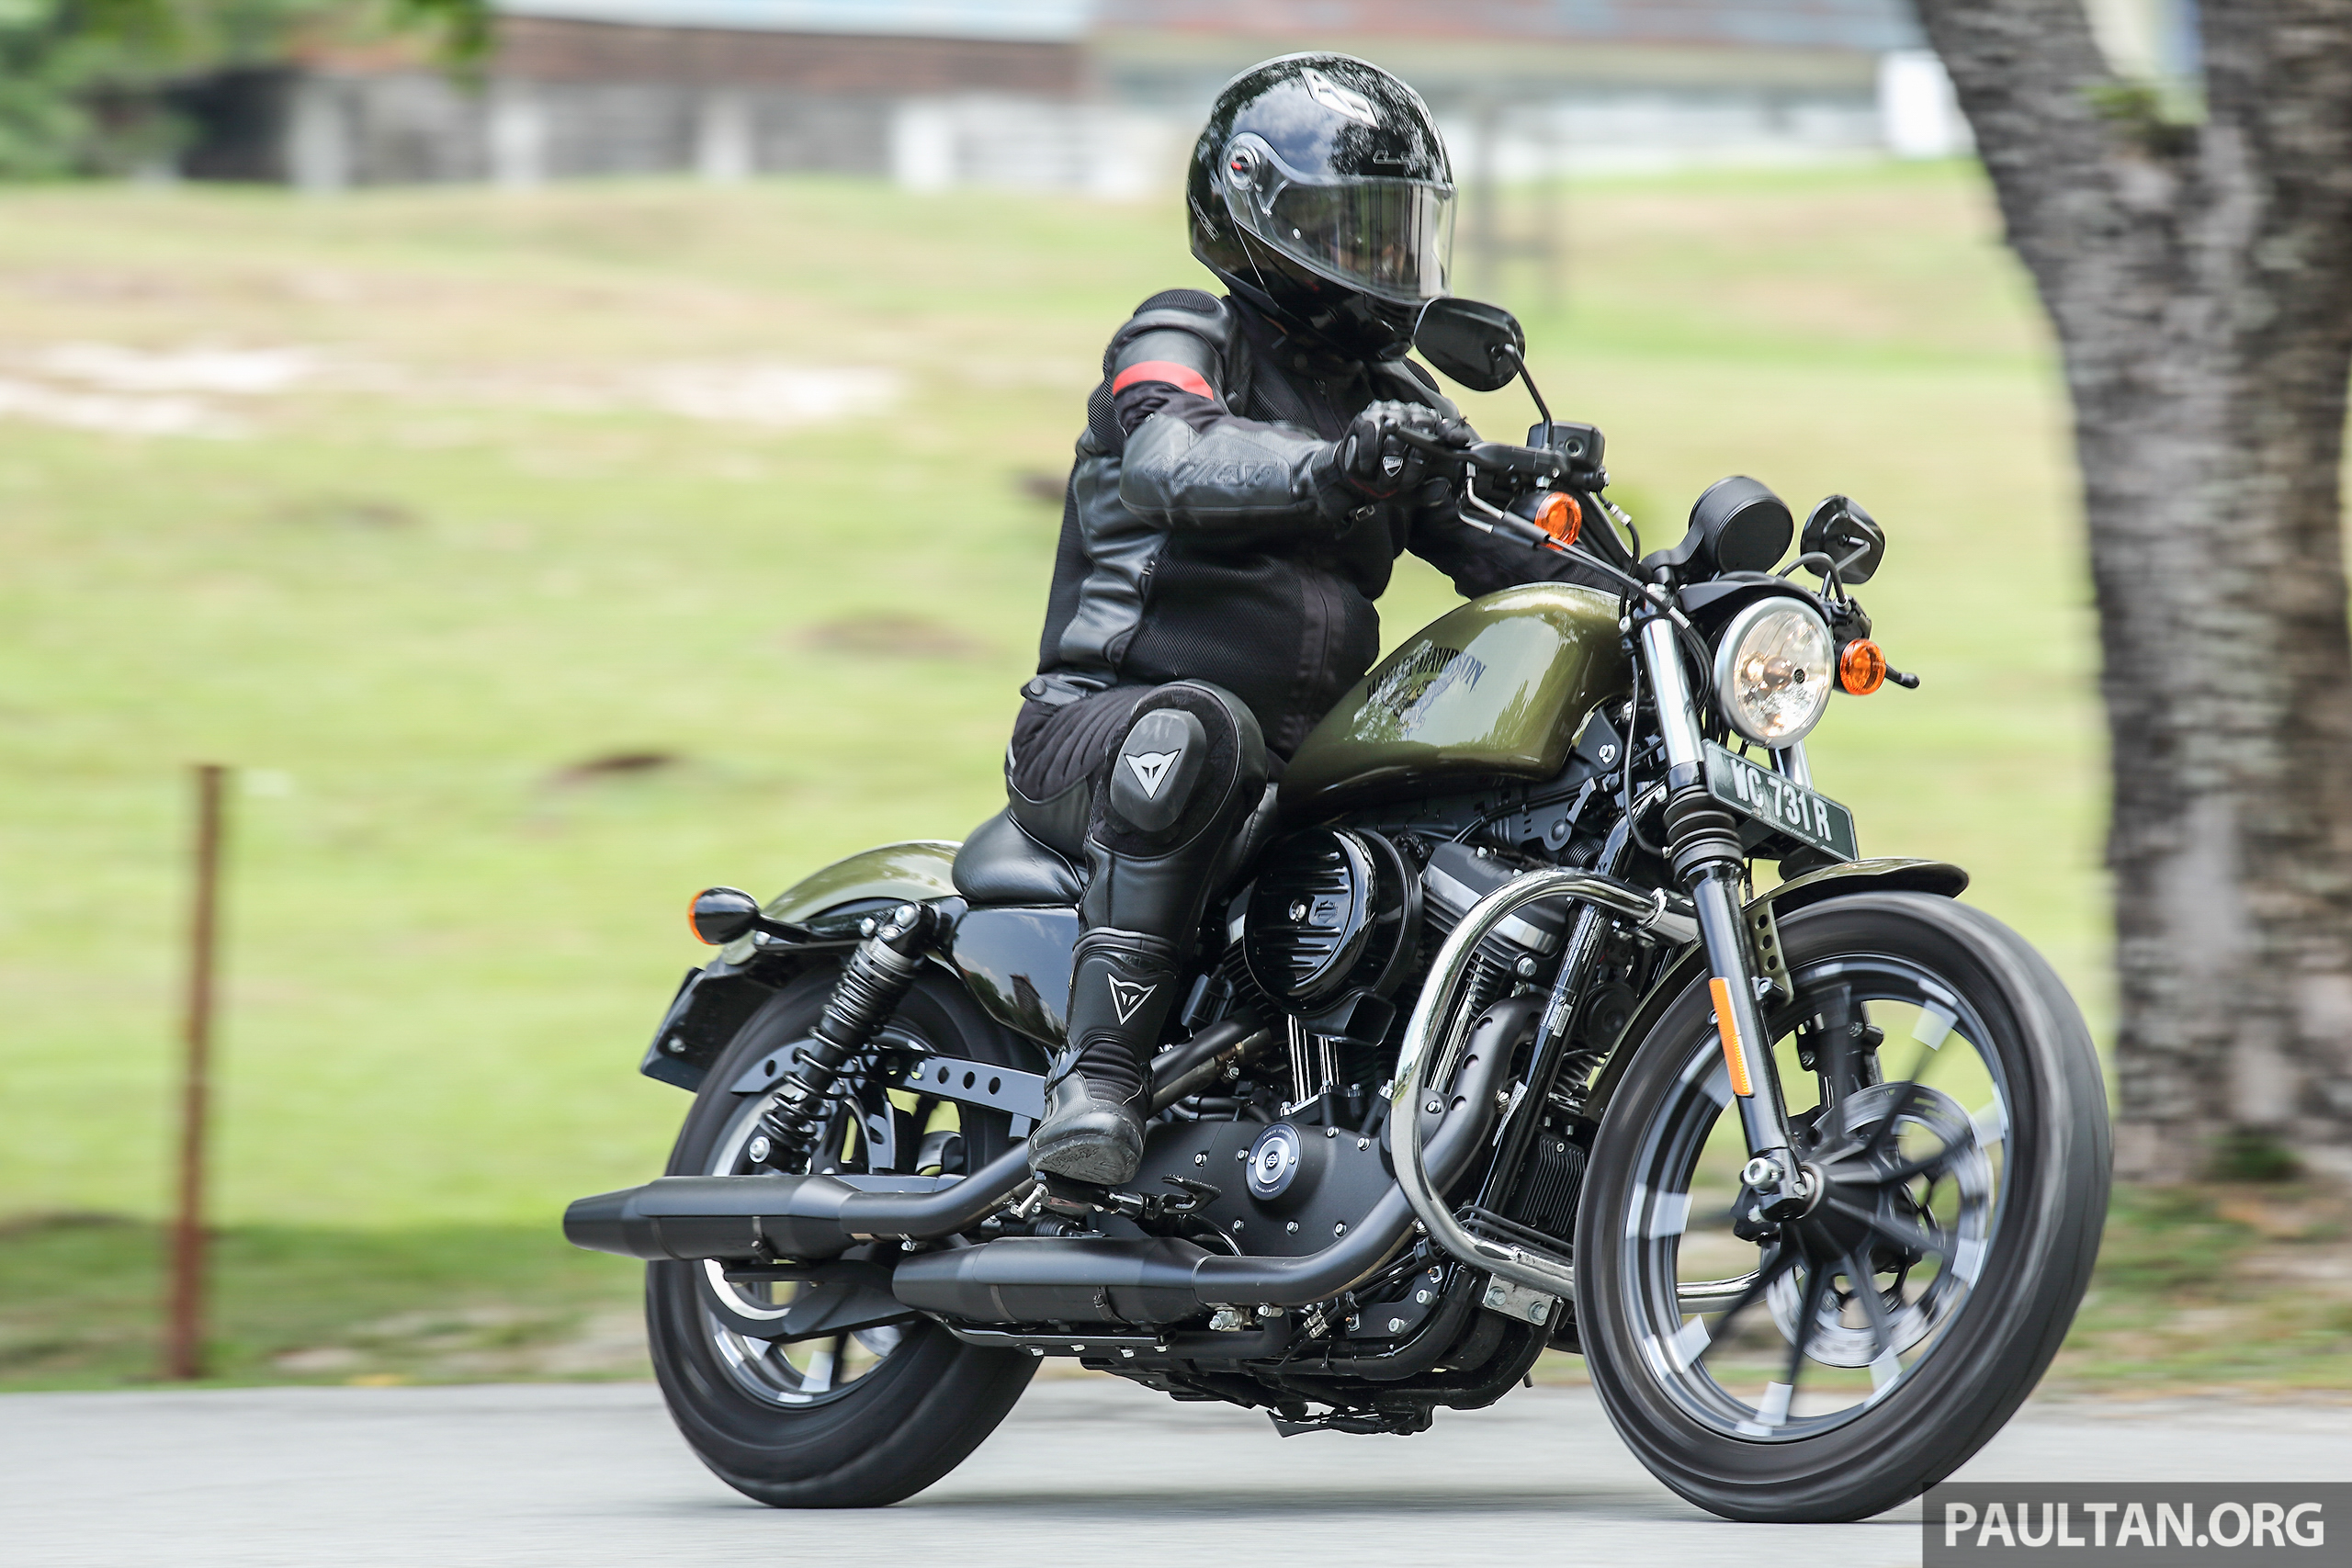 Harley 883 Iron >> REVIEW: 2016 Harley-Davidson Sportster Iron 883 – not your grandfather's Harley-Davidson, son ...